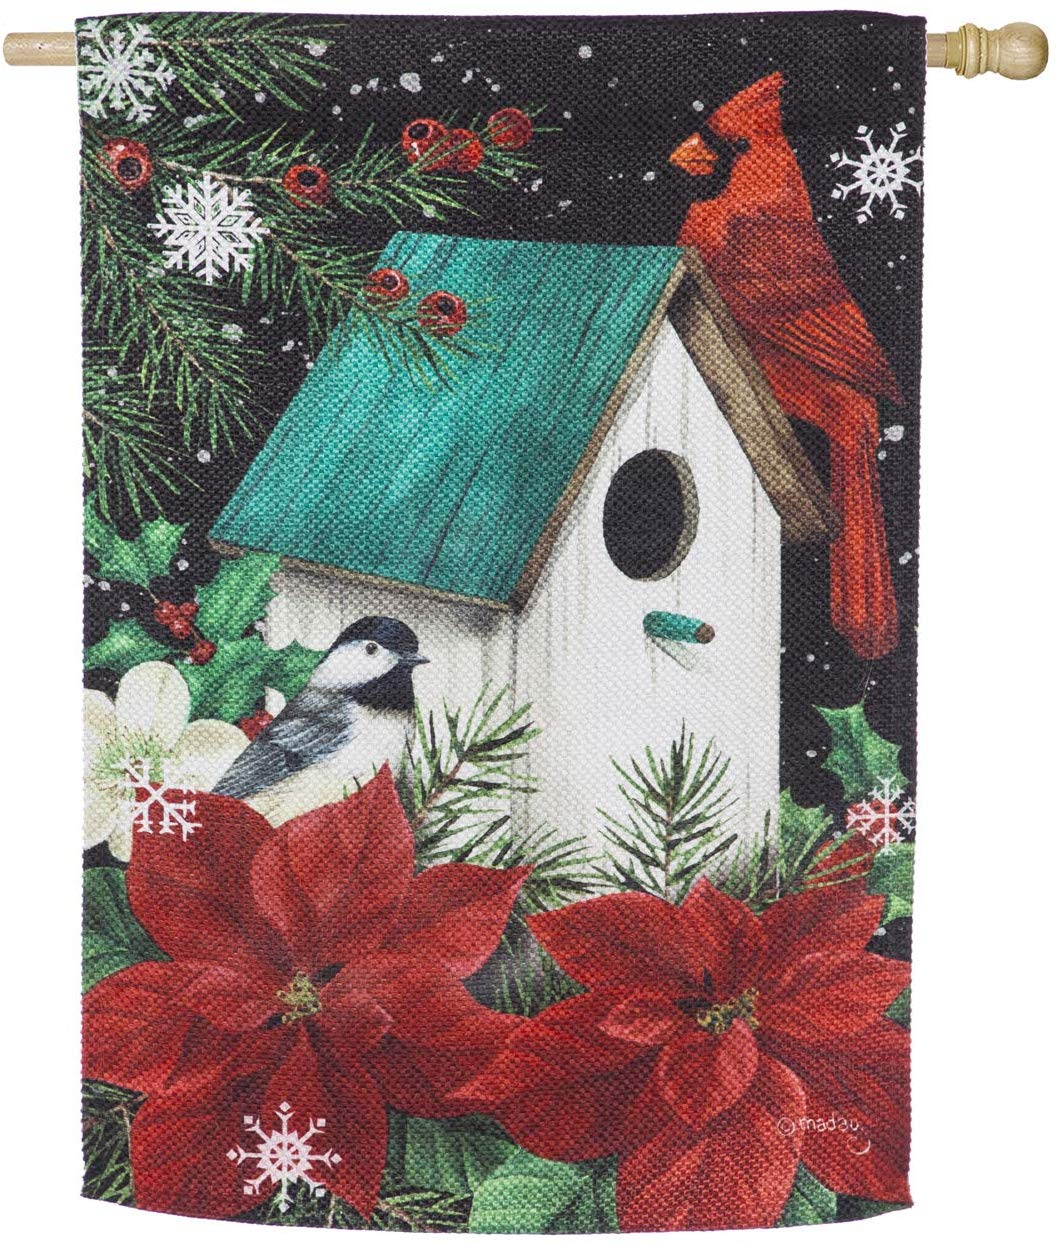 Poinsettia Birdhouse